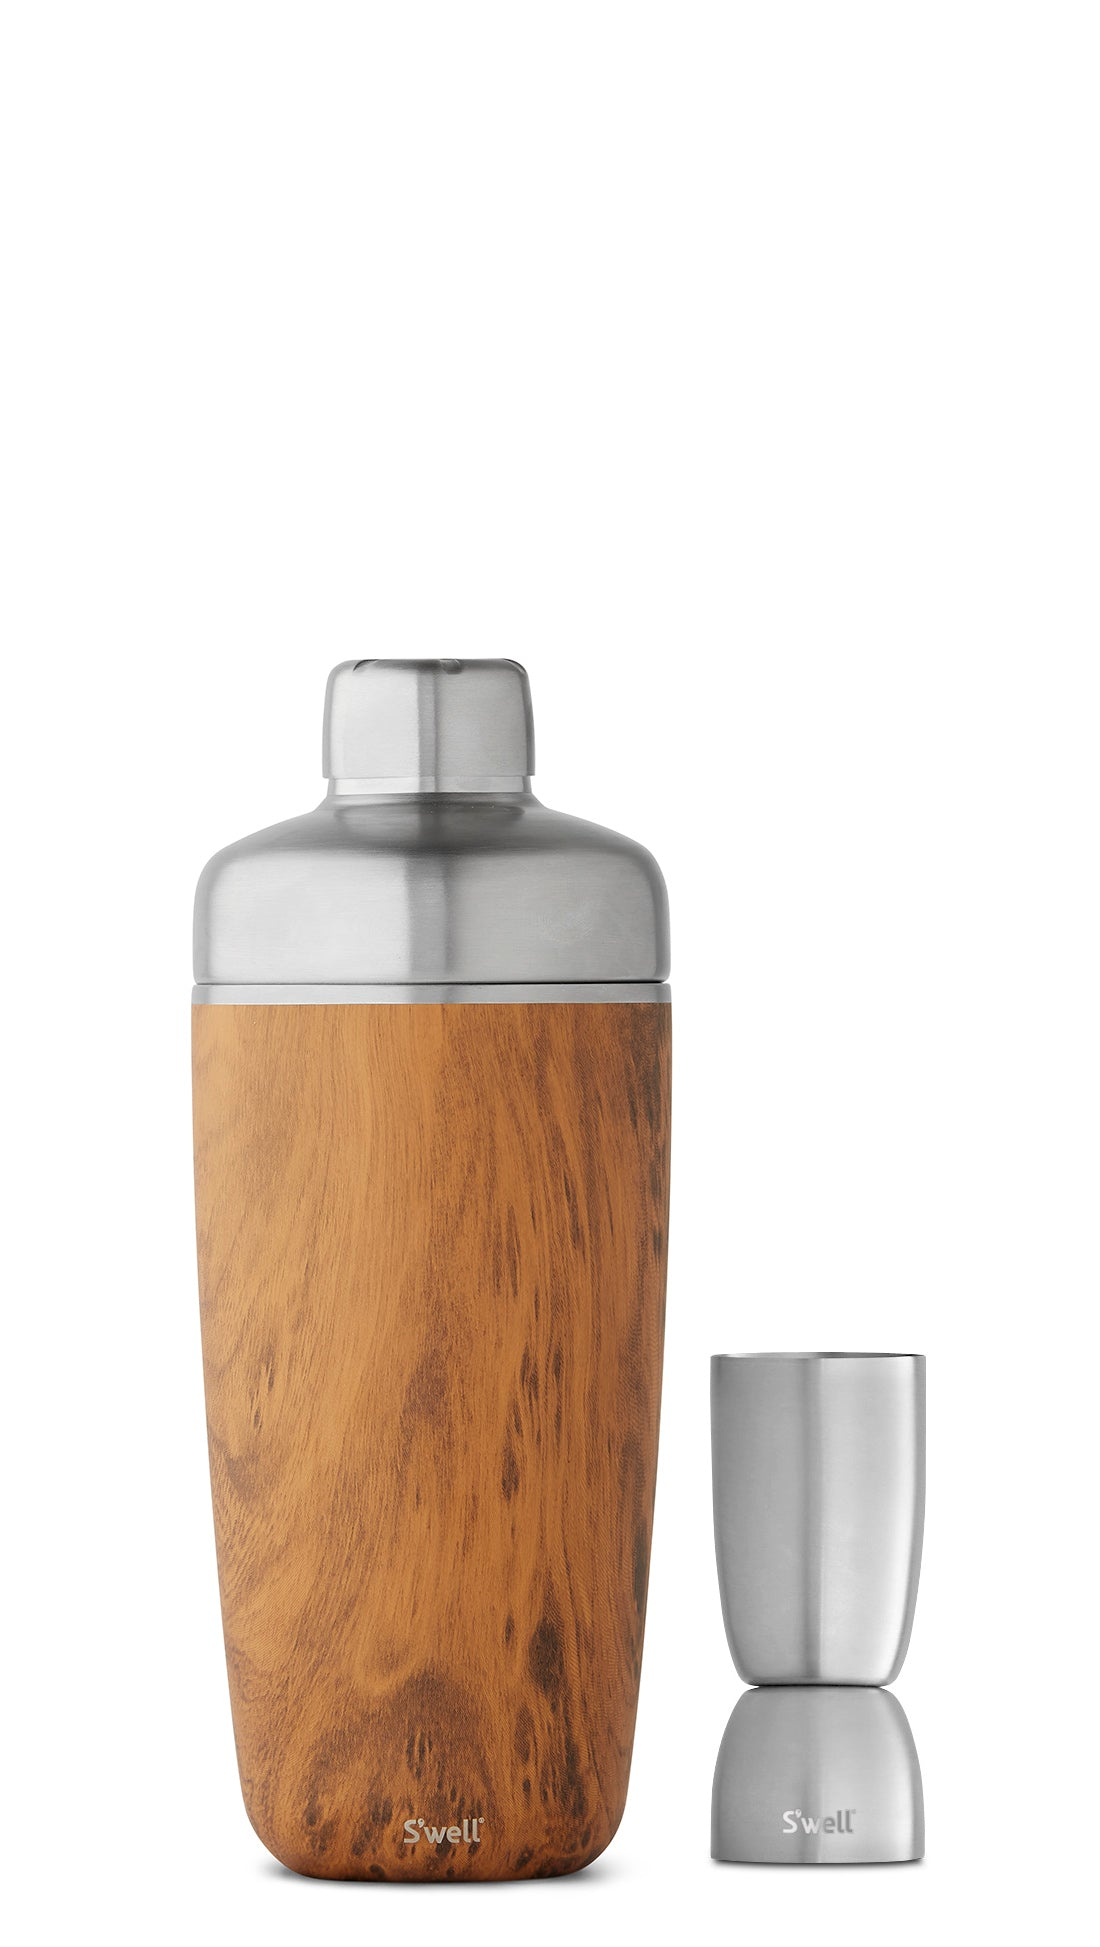 Teakwood Shaker Set